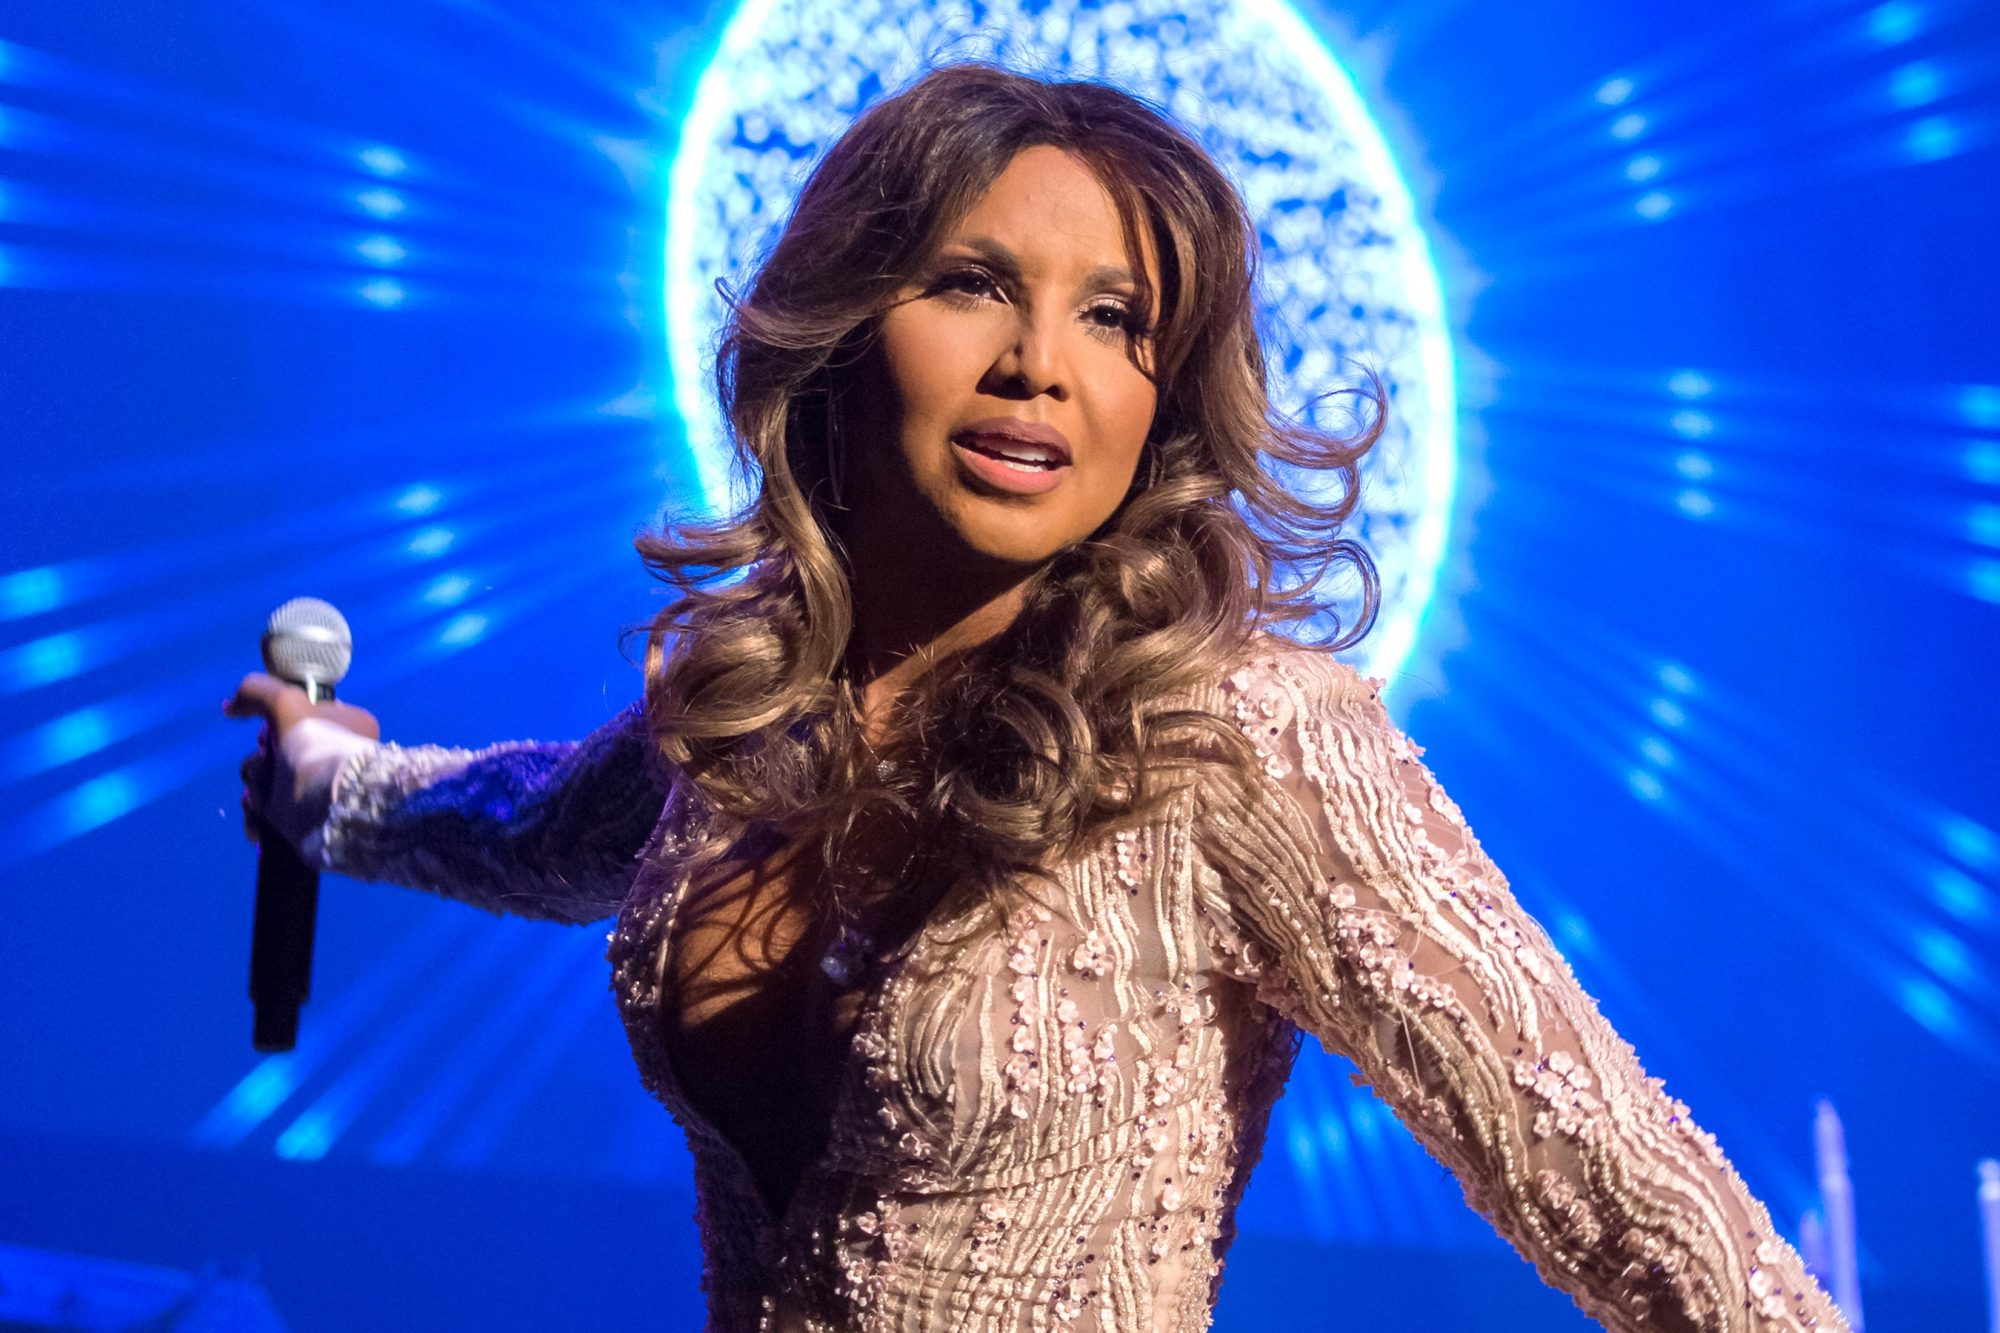 toni-braxton-looked-stunning-in-her-nye-white-gown-see-her-photo